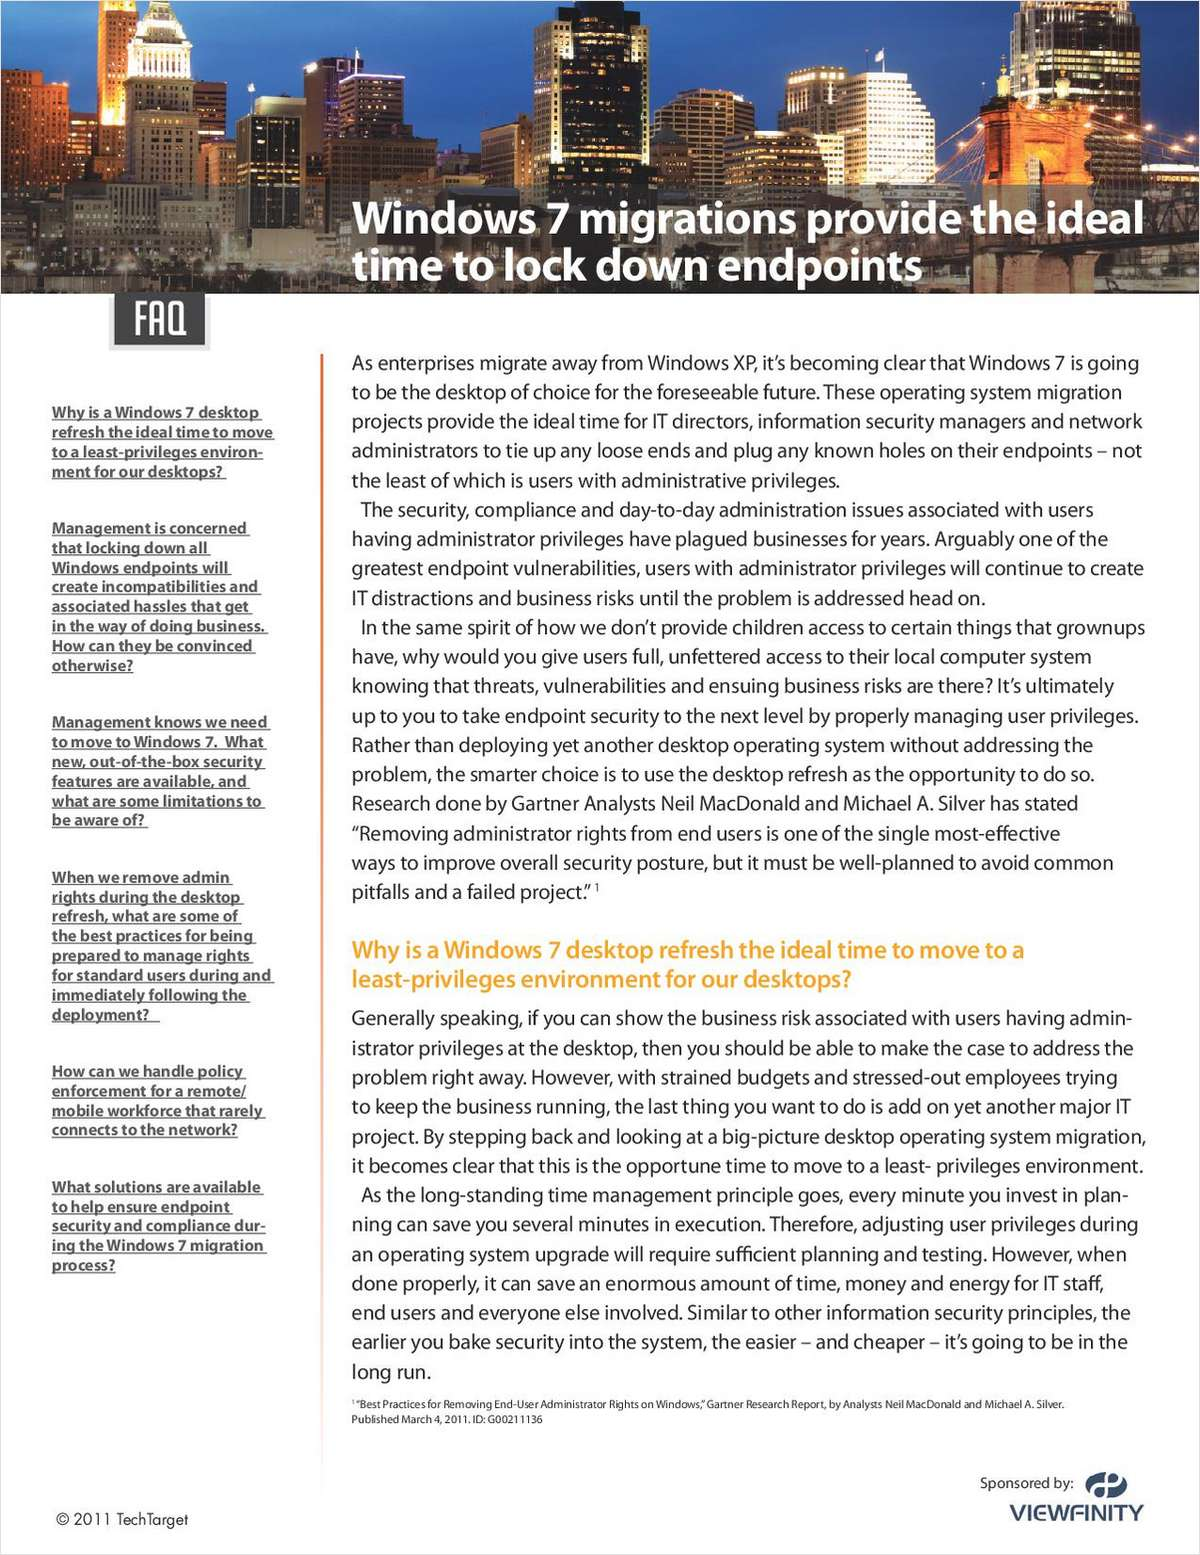 FAQ Guide: Windows 7 Migrations Are the Time to Lockdown PCs